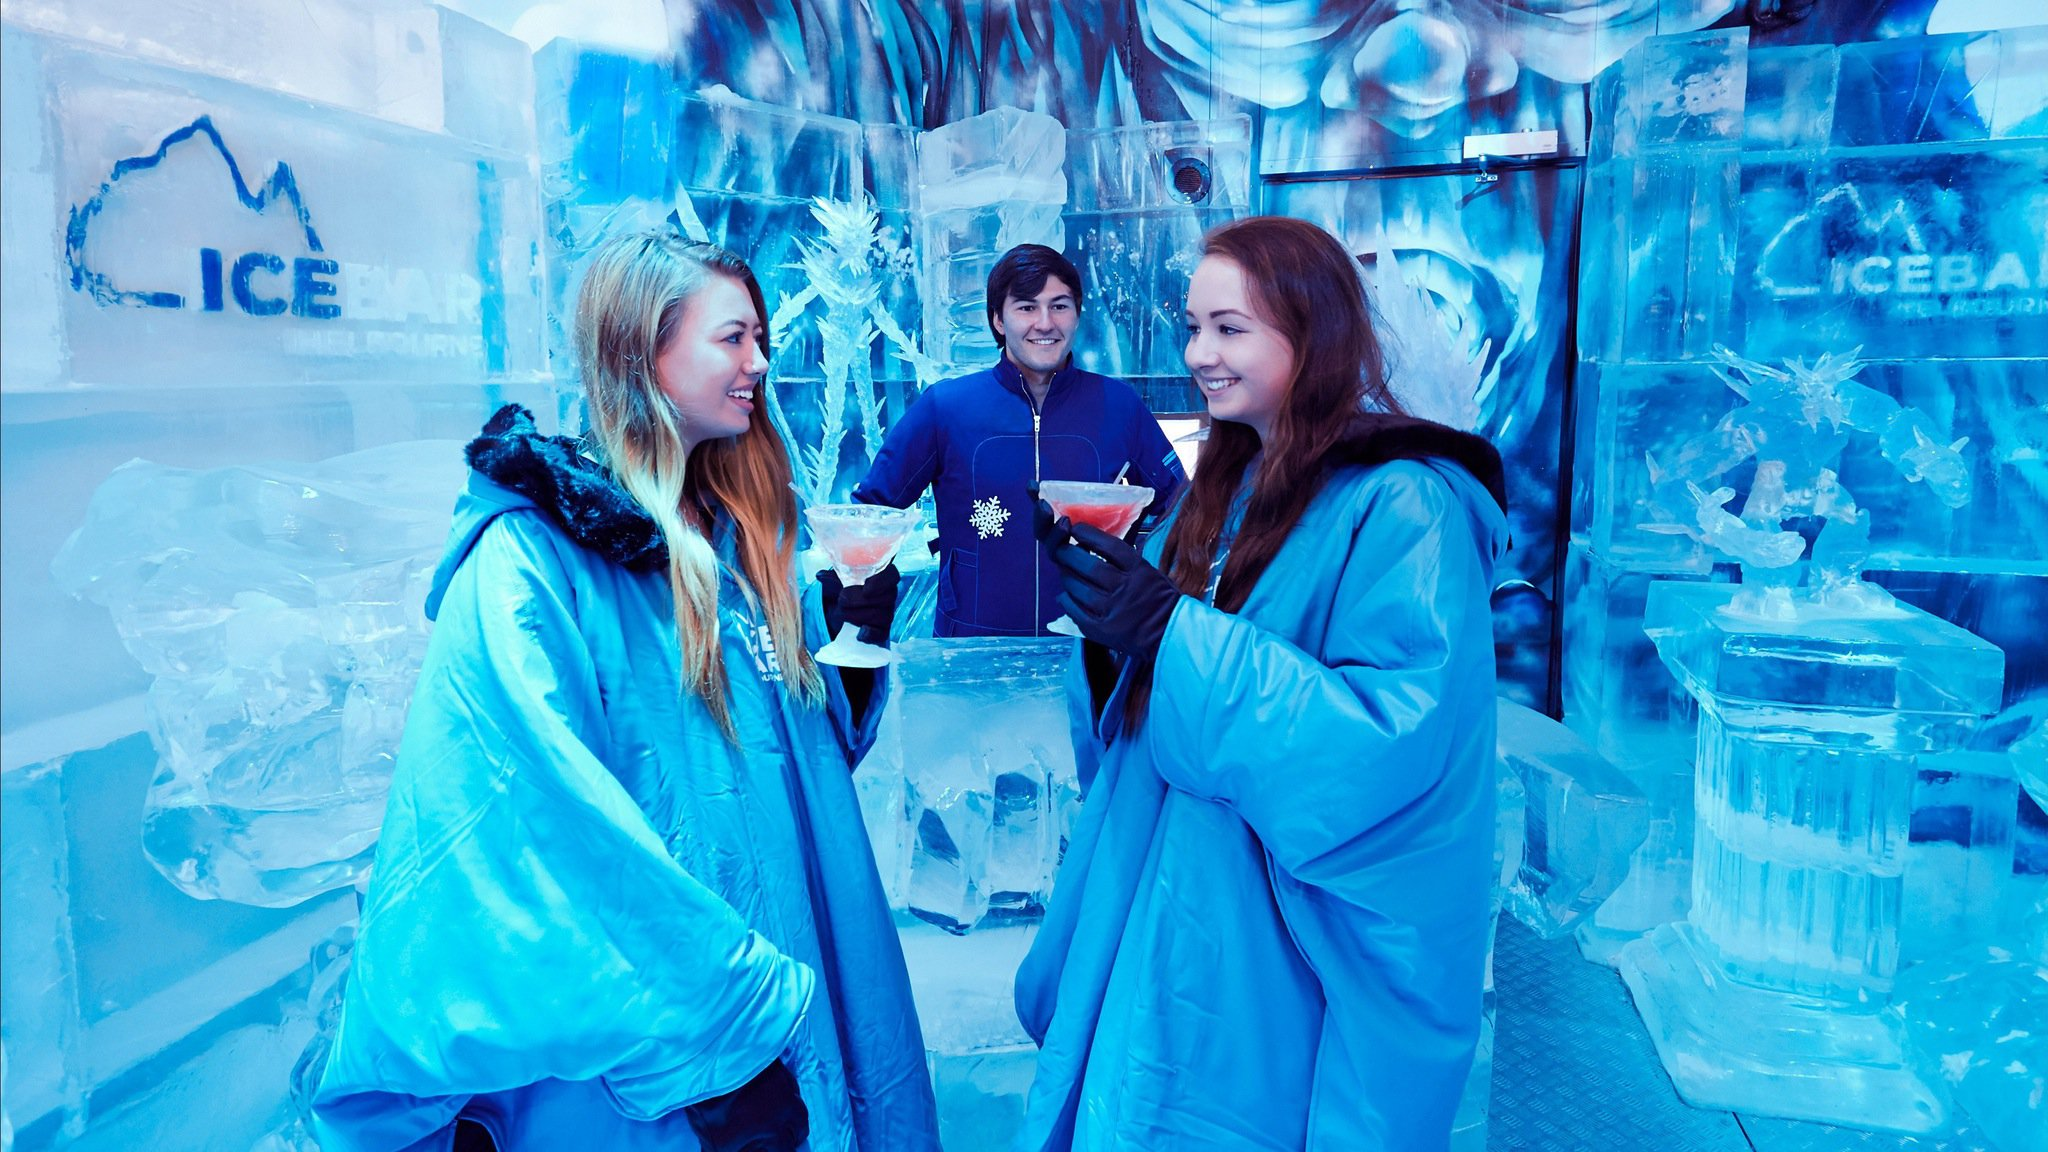 Icebar Melbourne - South Australia Travel